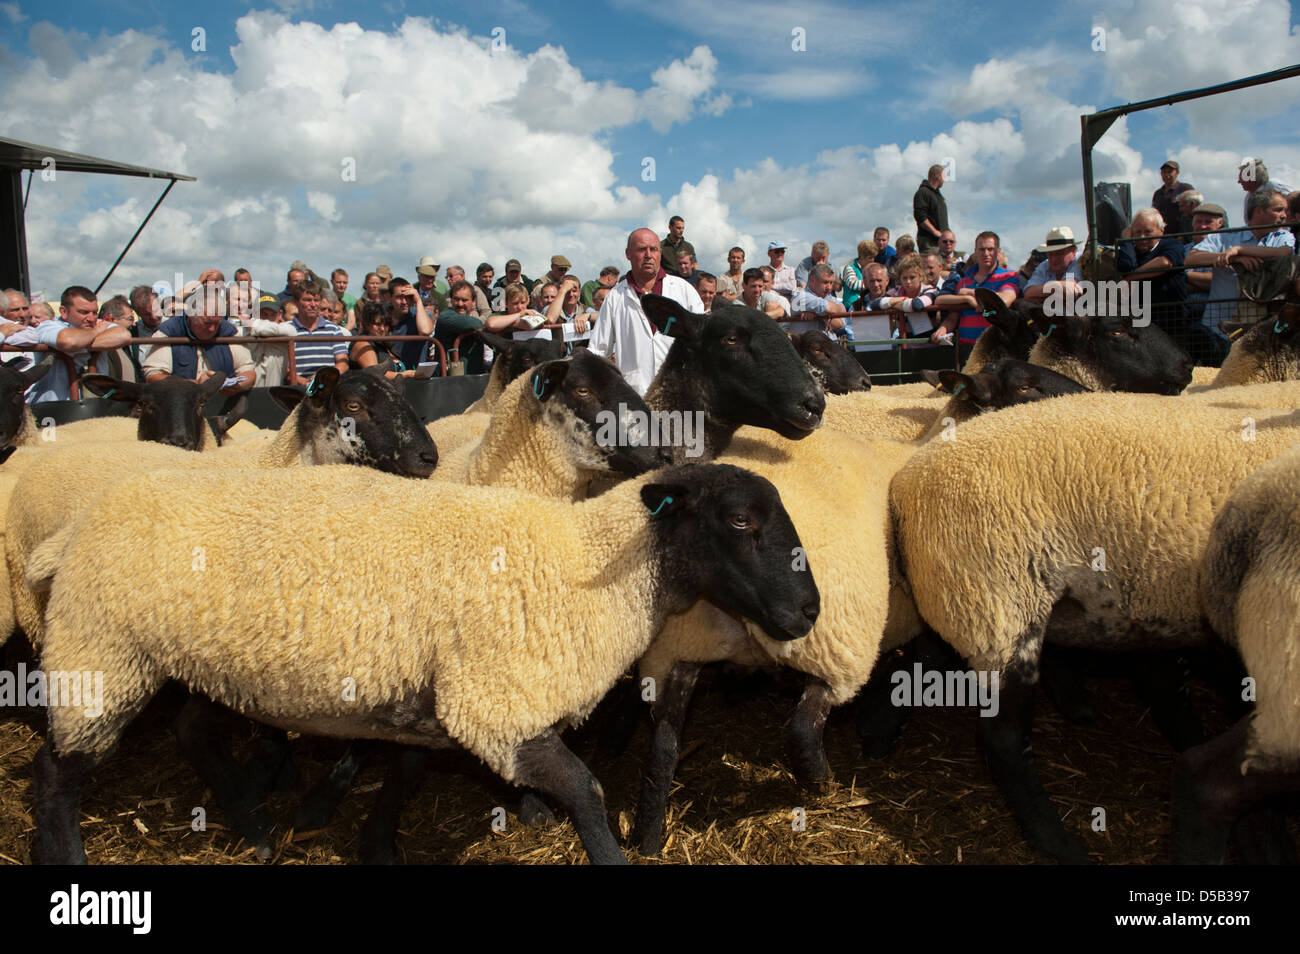 Suffolk crossbred breeding sheep in the ring at Thame sheep fair 2012 - Stock Image